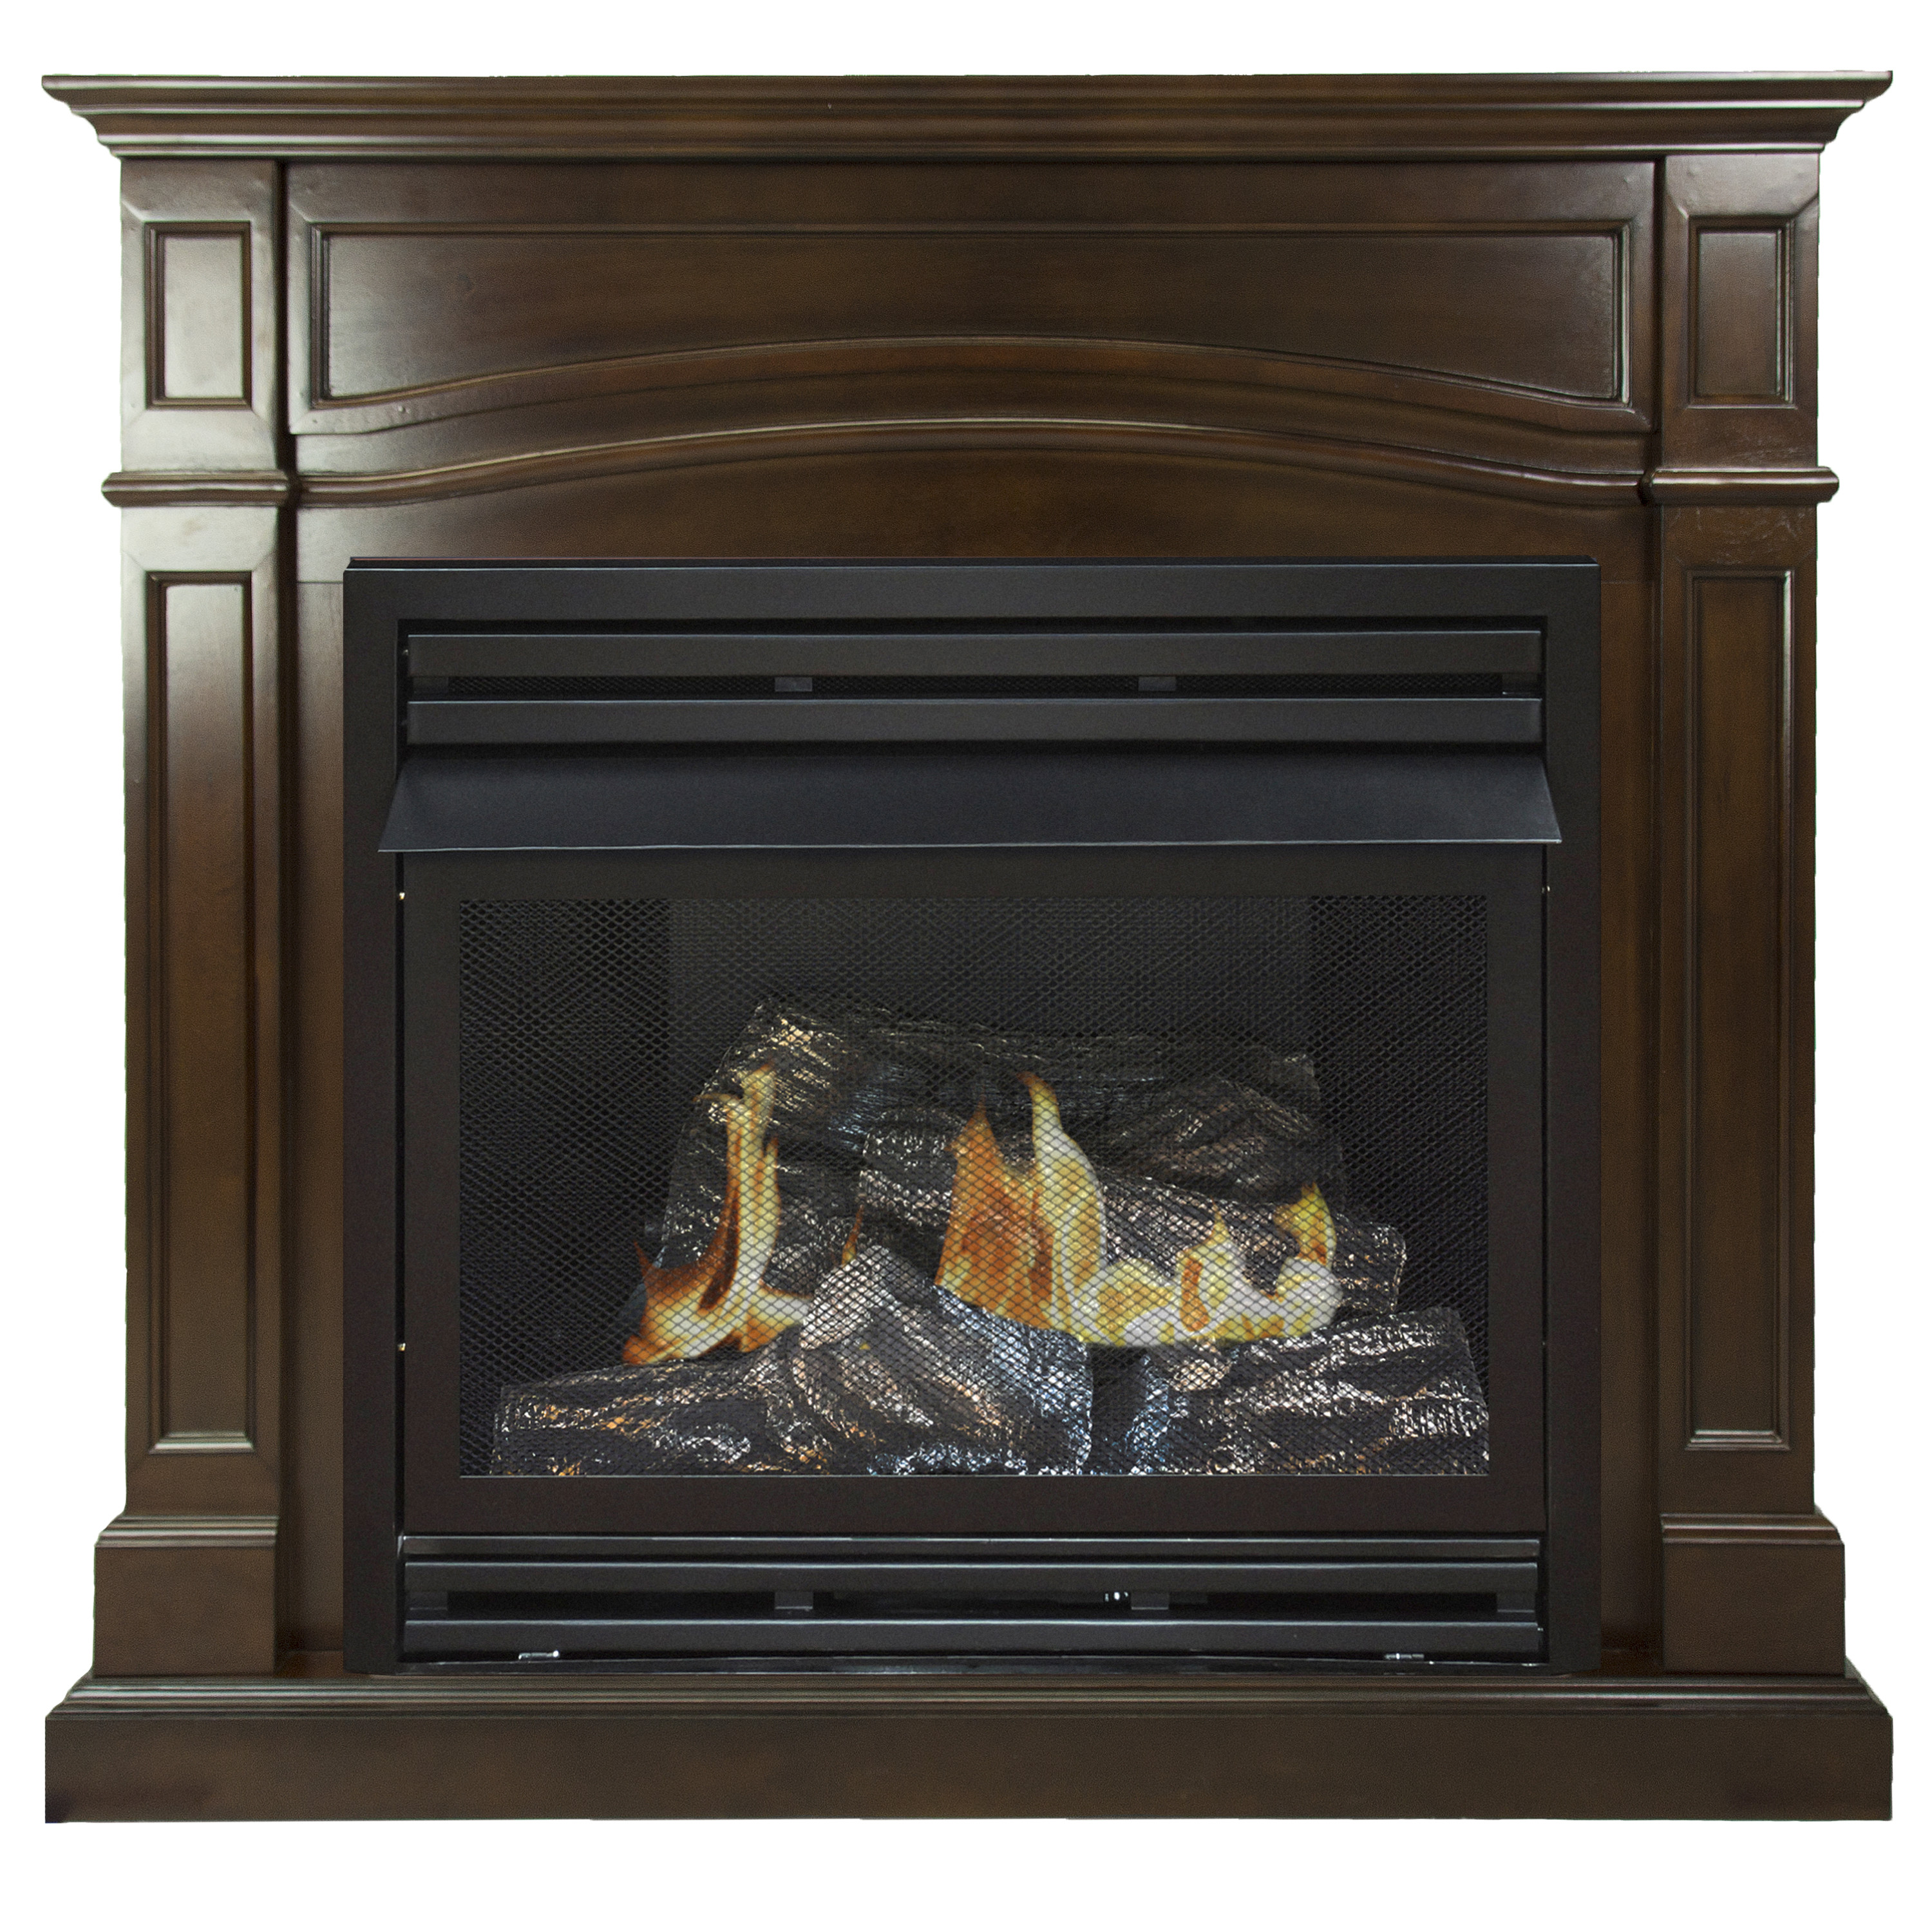 Pleasant Hearth Gas Fireplace New Pleasant Hearth 46 In Natural Gas Full Size Cherry Vent Free Fireplace System 32 000 Btu